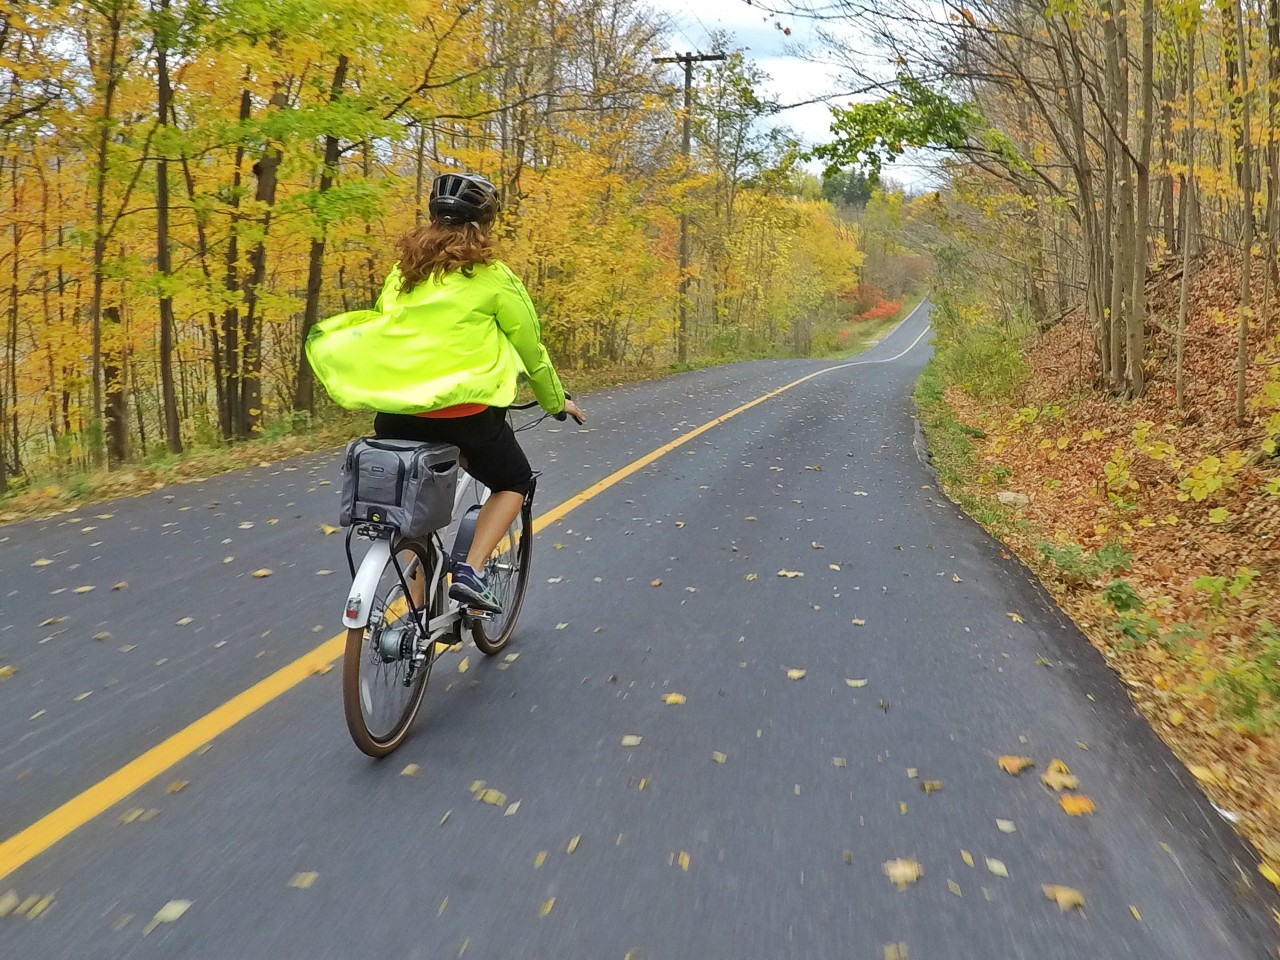 Credit: Howard Calvert, E-bike riding in Halton Region, Ontario